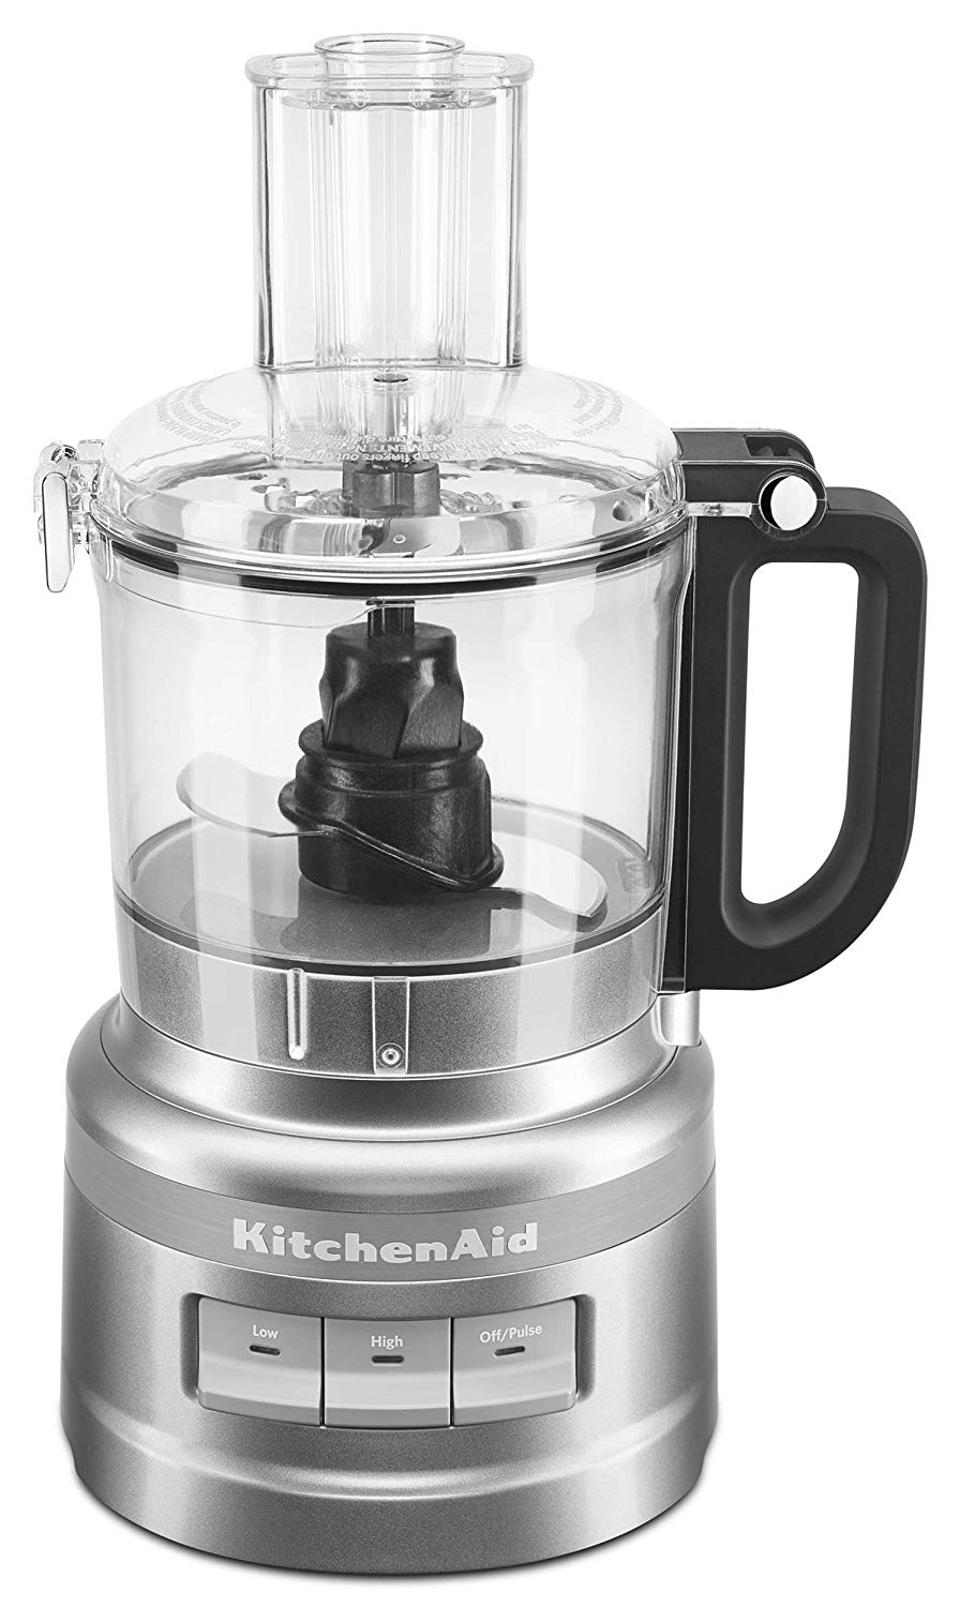 Best Food Processor 2020.The Best Food Processors Of 2019